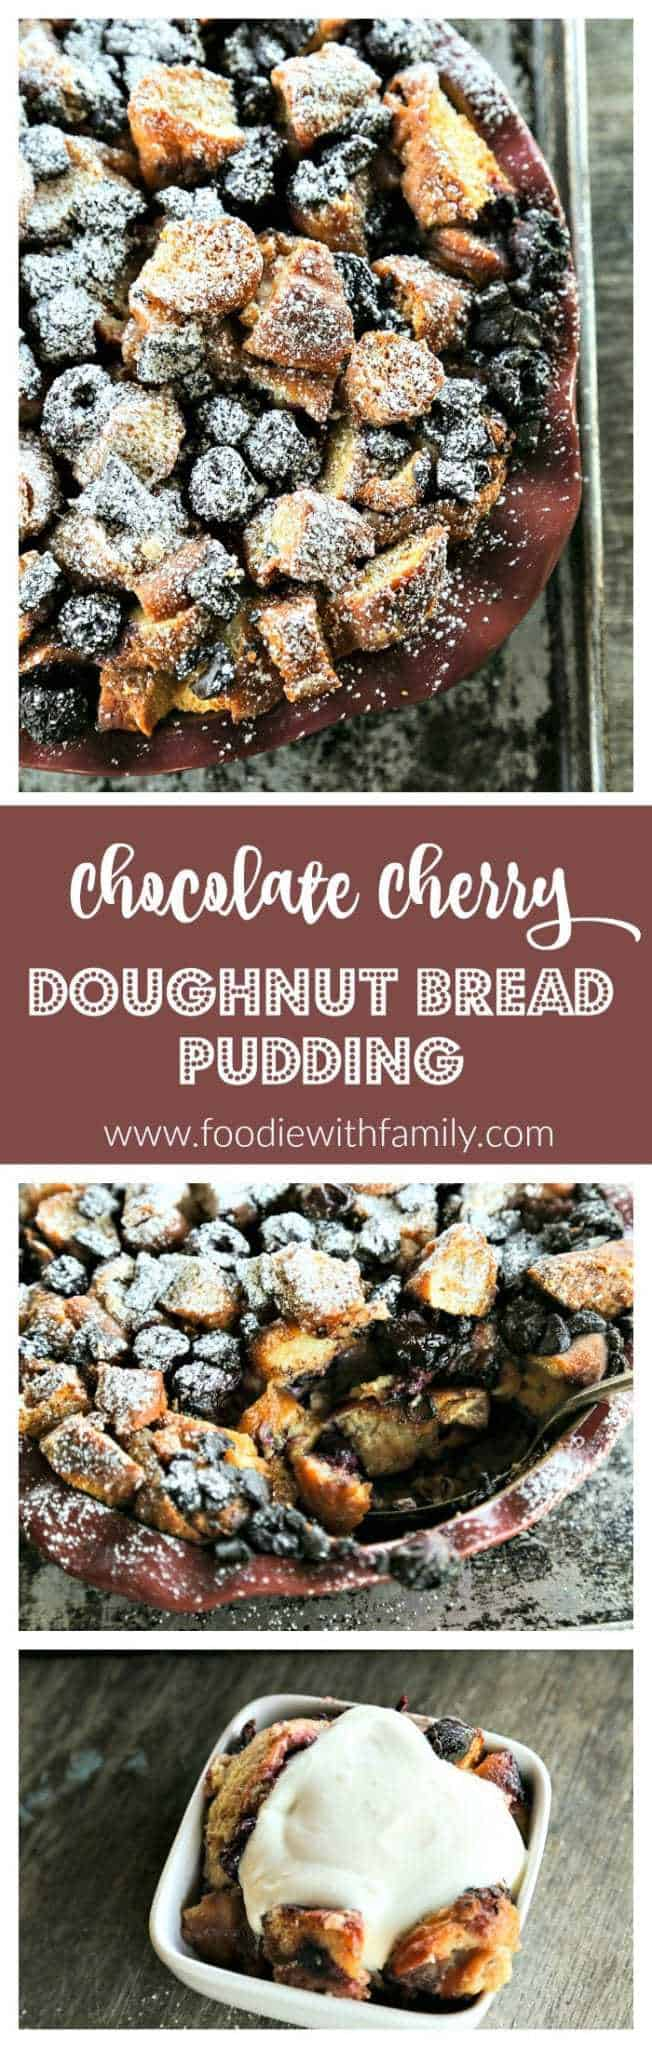 Chocolate Cherry Doughnut Bread Pudding is the creamiest, richest, most souffle-like bread pudding of leftover doughnuts, dark chocolate chunks, and sweet, black cherries.